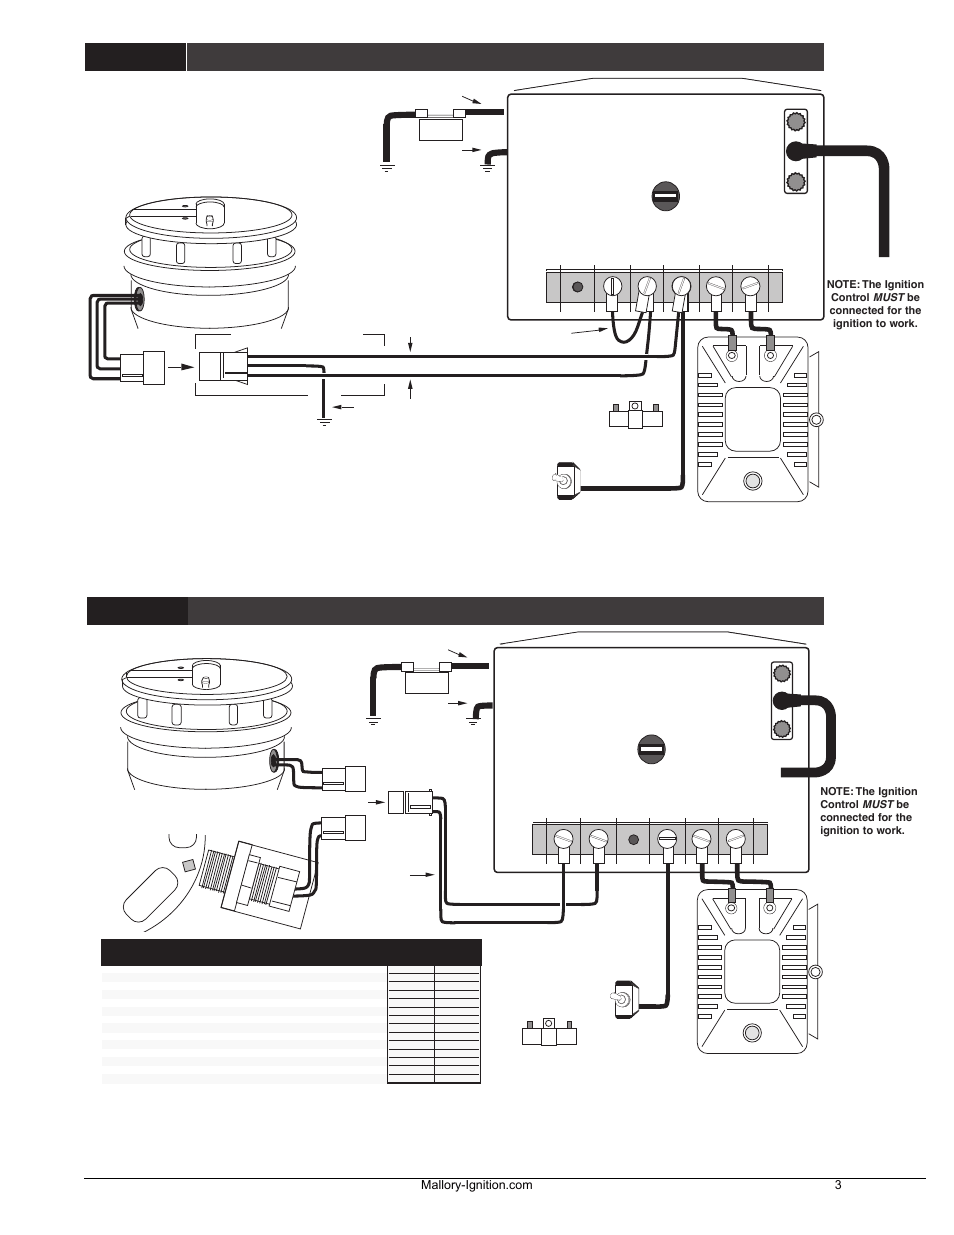 mopar electronic ignition conversion wiring diagram 51 wiring diagram images wiring diagrams Mopar MSD Ignition Wiring Diagram MSD Ignition 6AL Wiring-Diagram